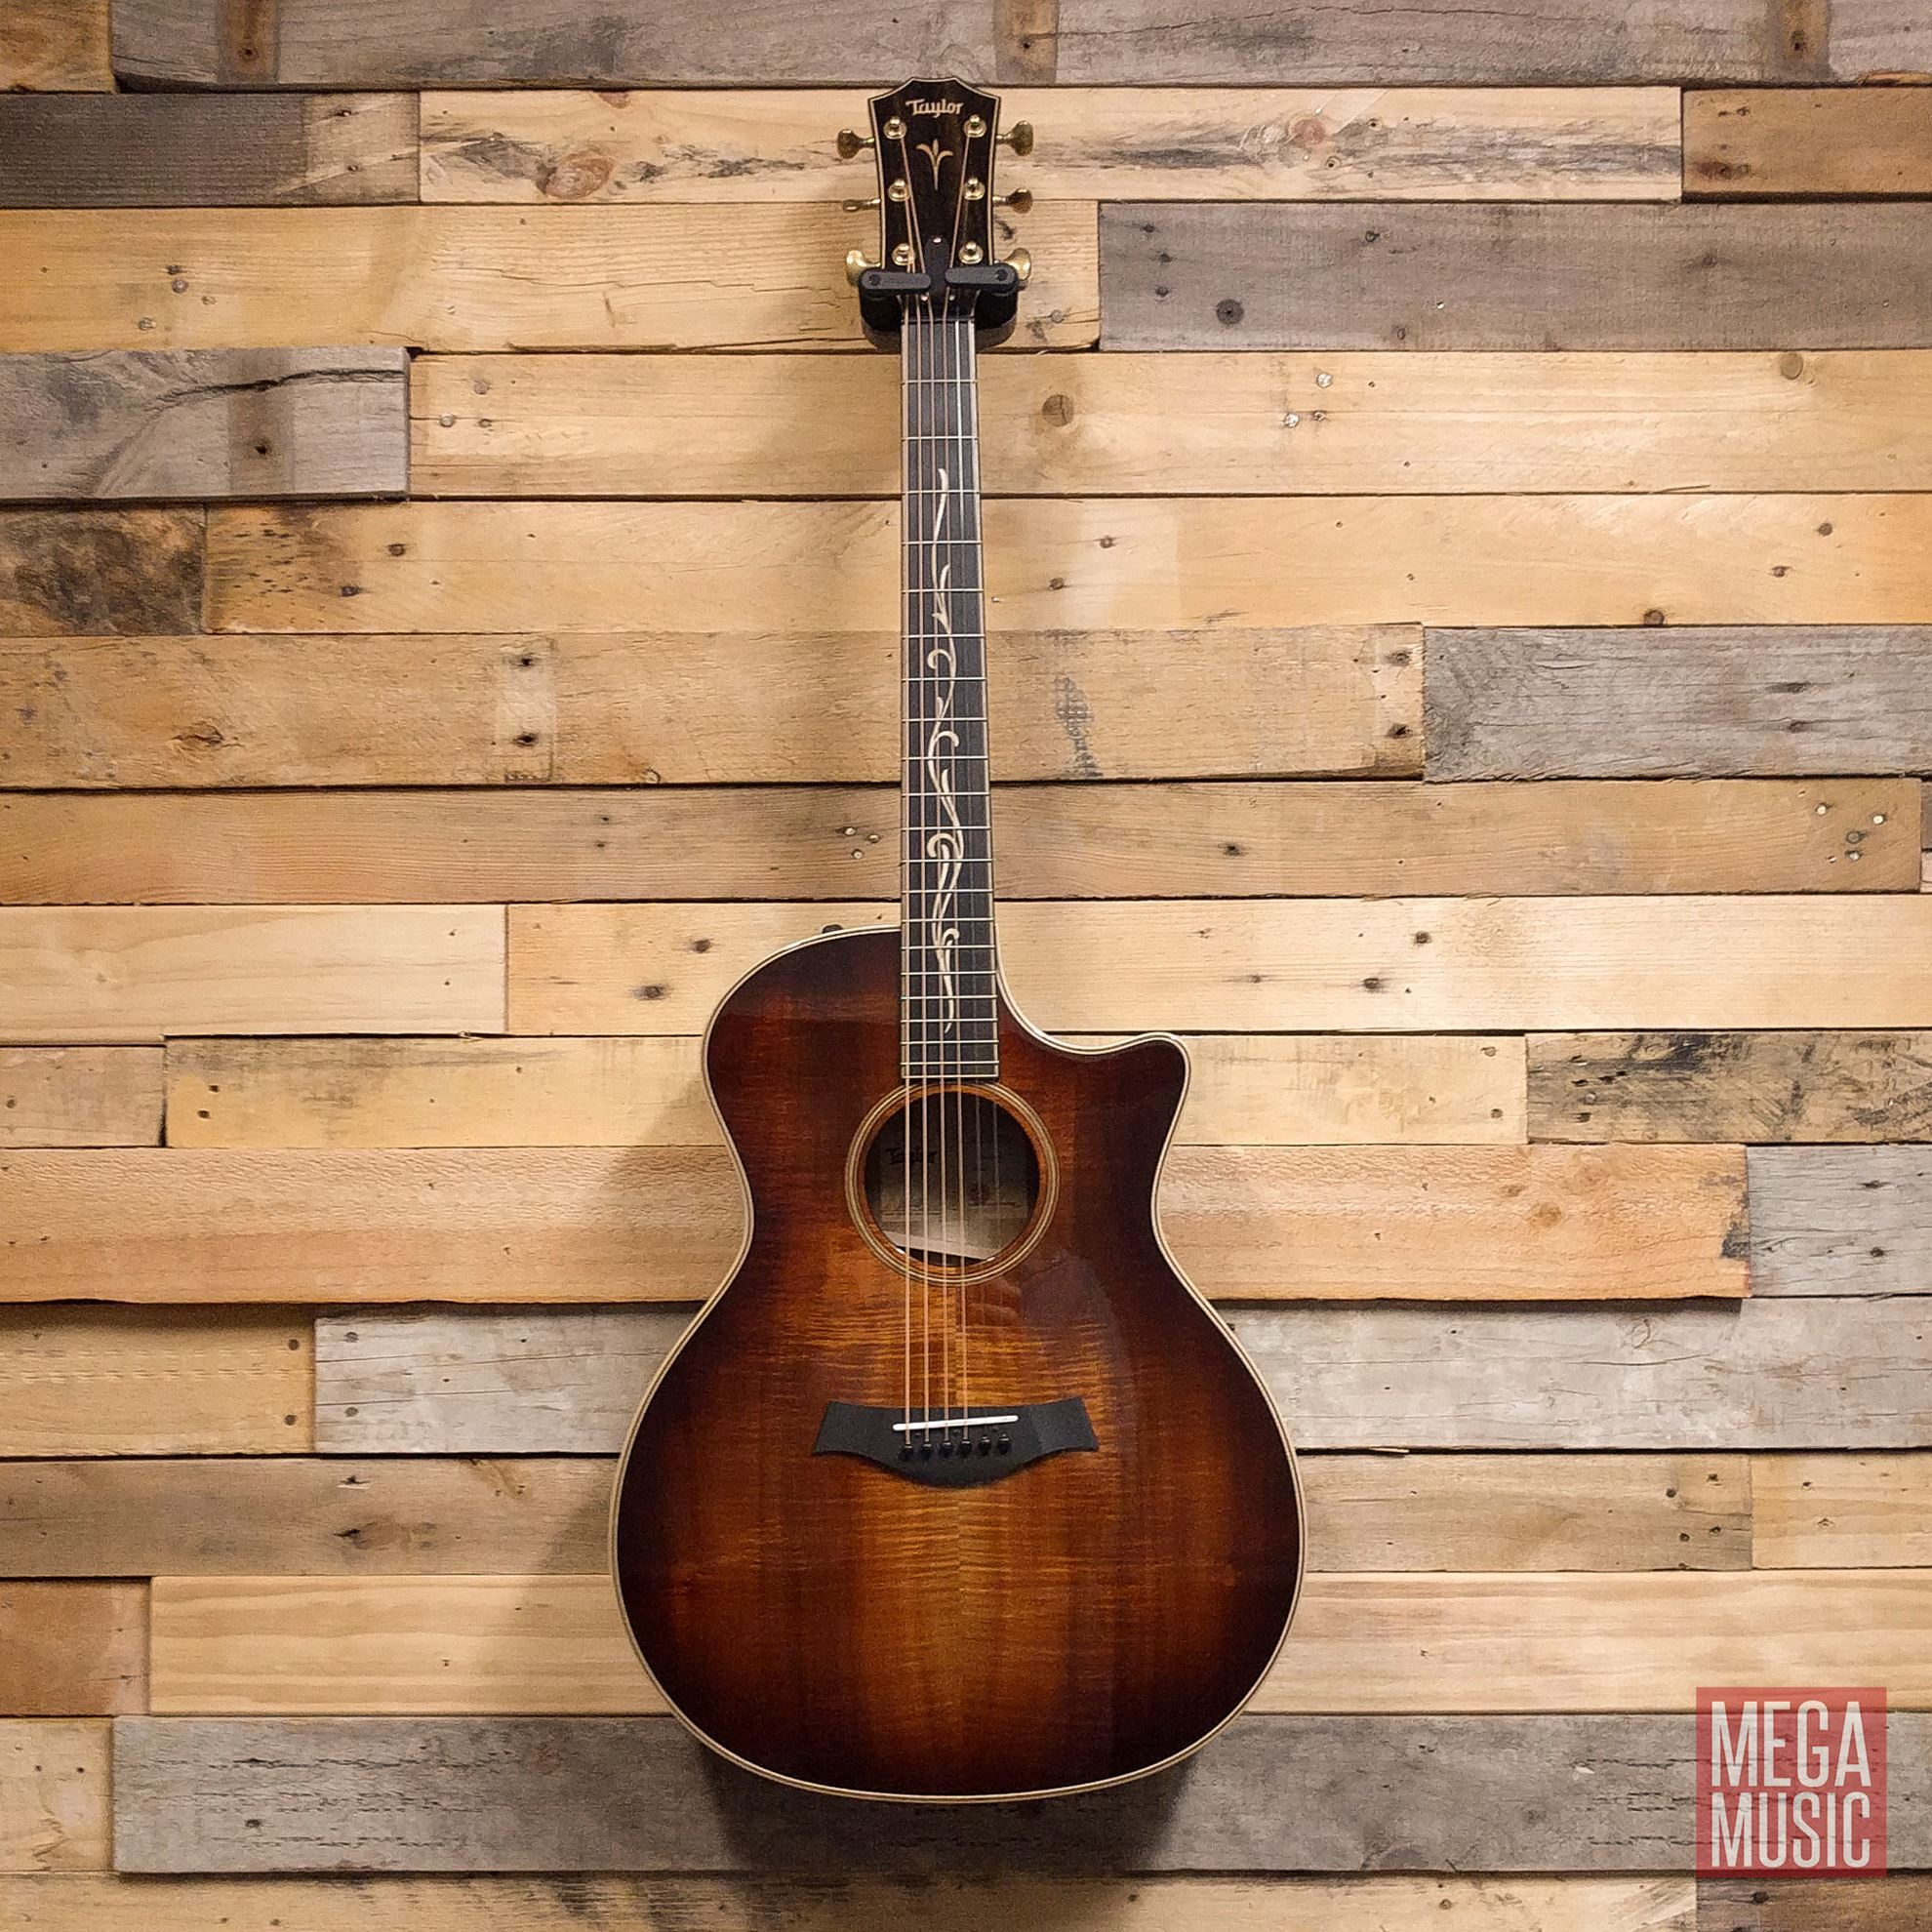 Taylor K24ce Koa Acoustic Guitar with Pickup and Cutaway